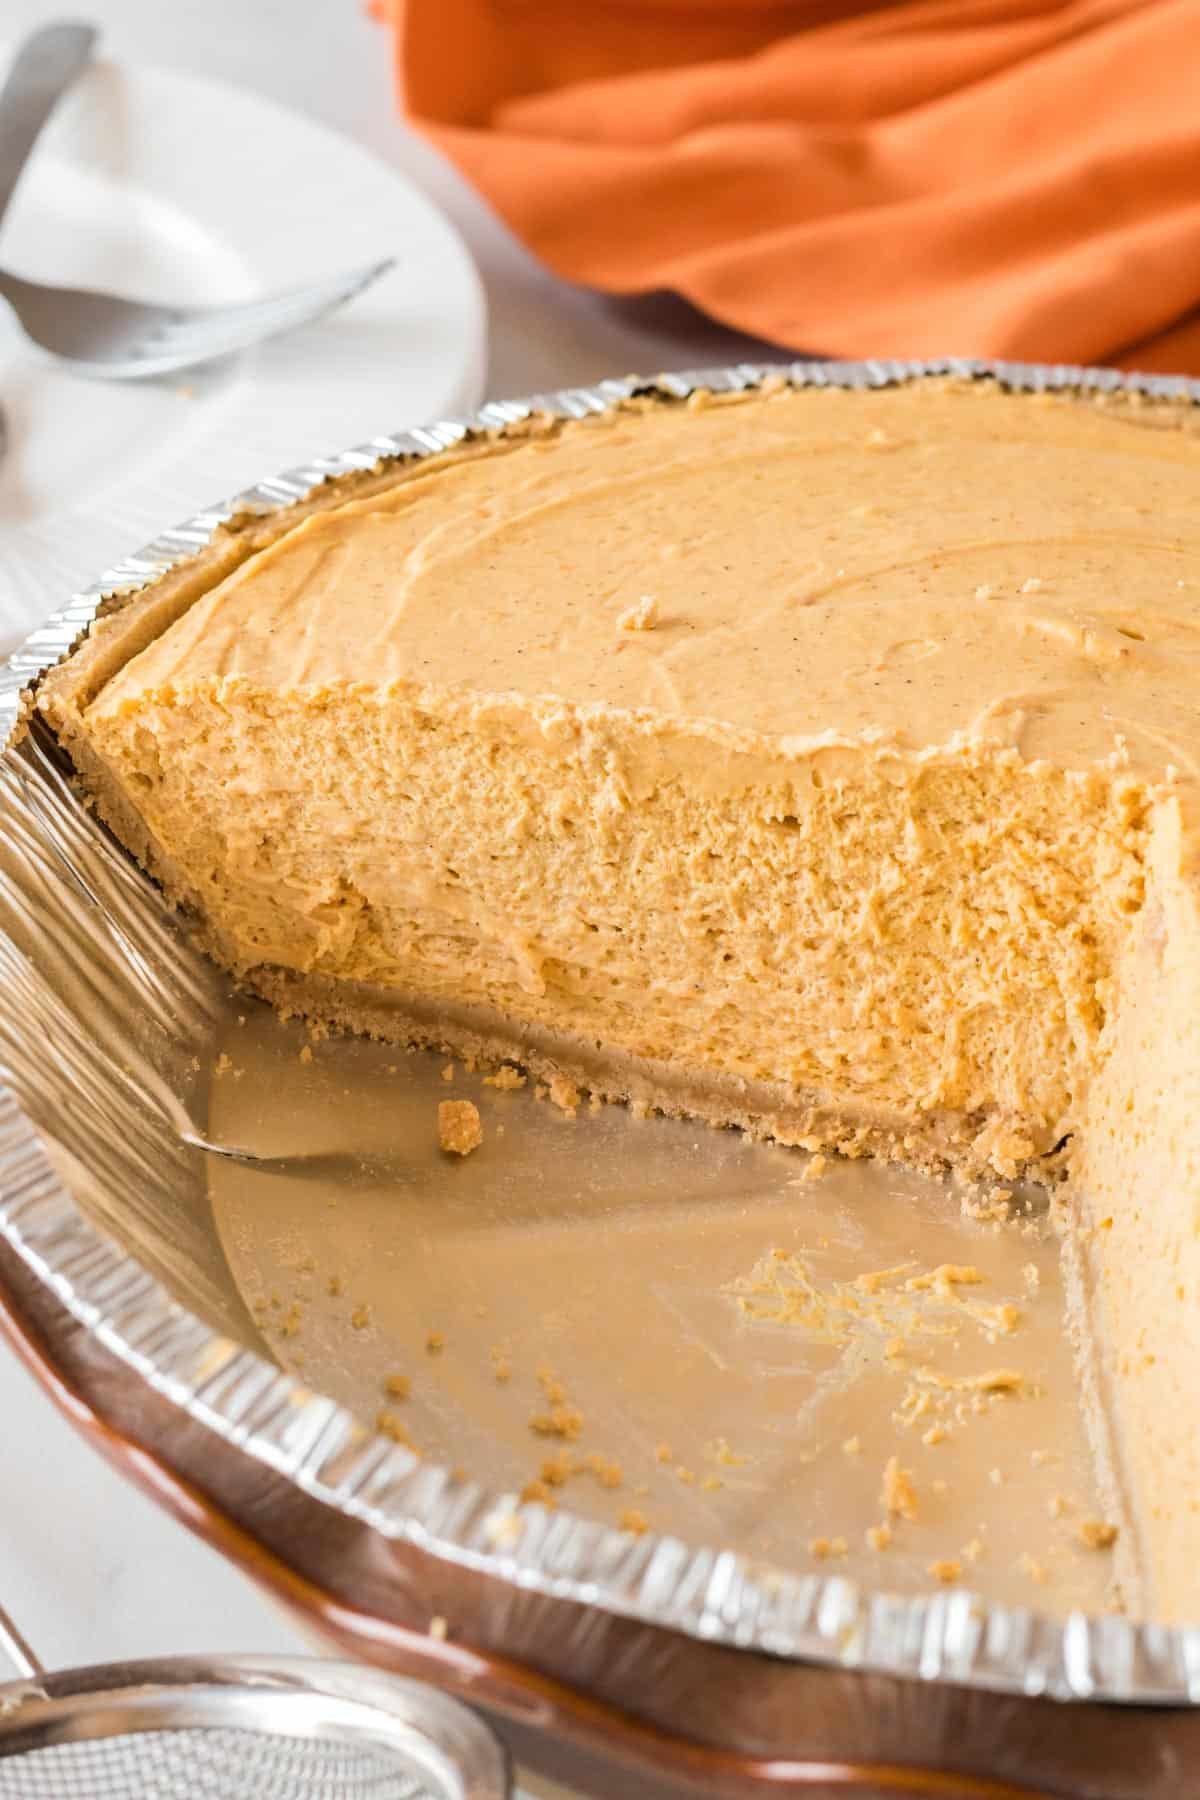 showing the texture of the whipped no bake pumpkin pie